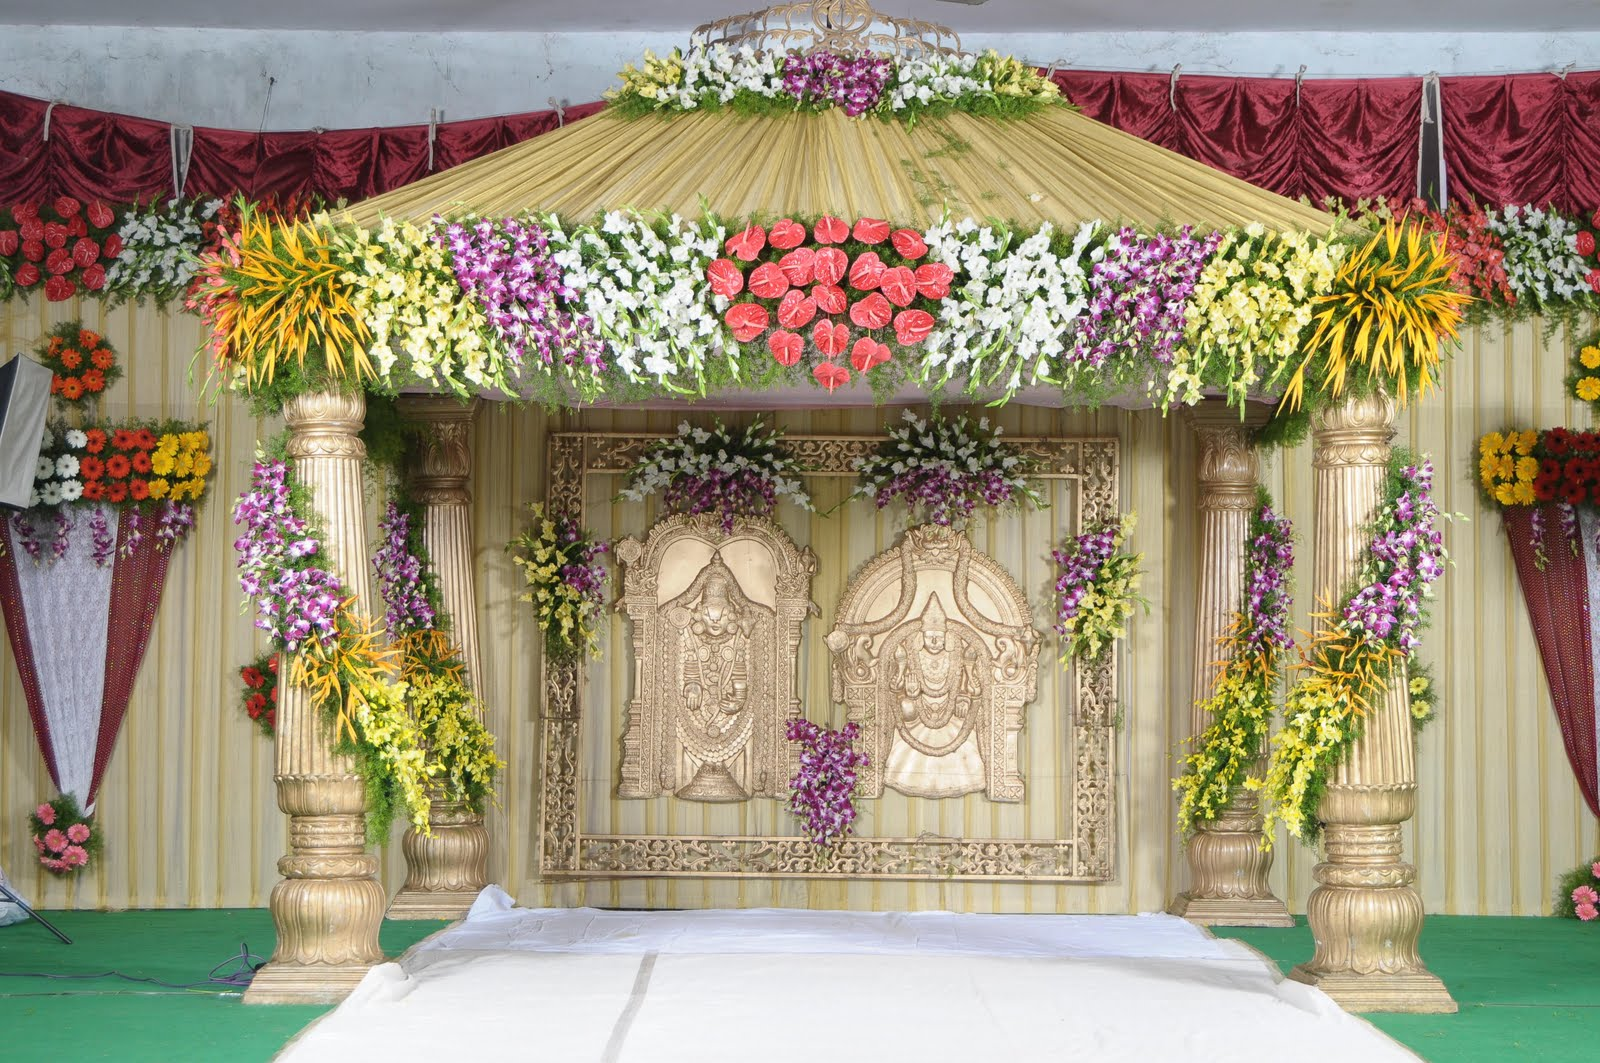 About marriage marriage decoration photos 2013 marriage for Art decoration ideas